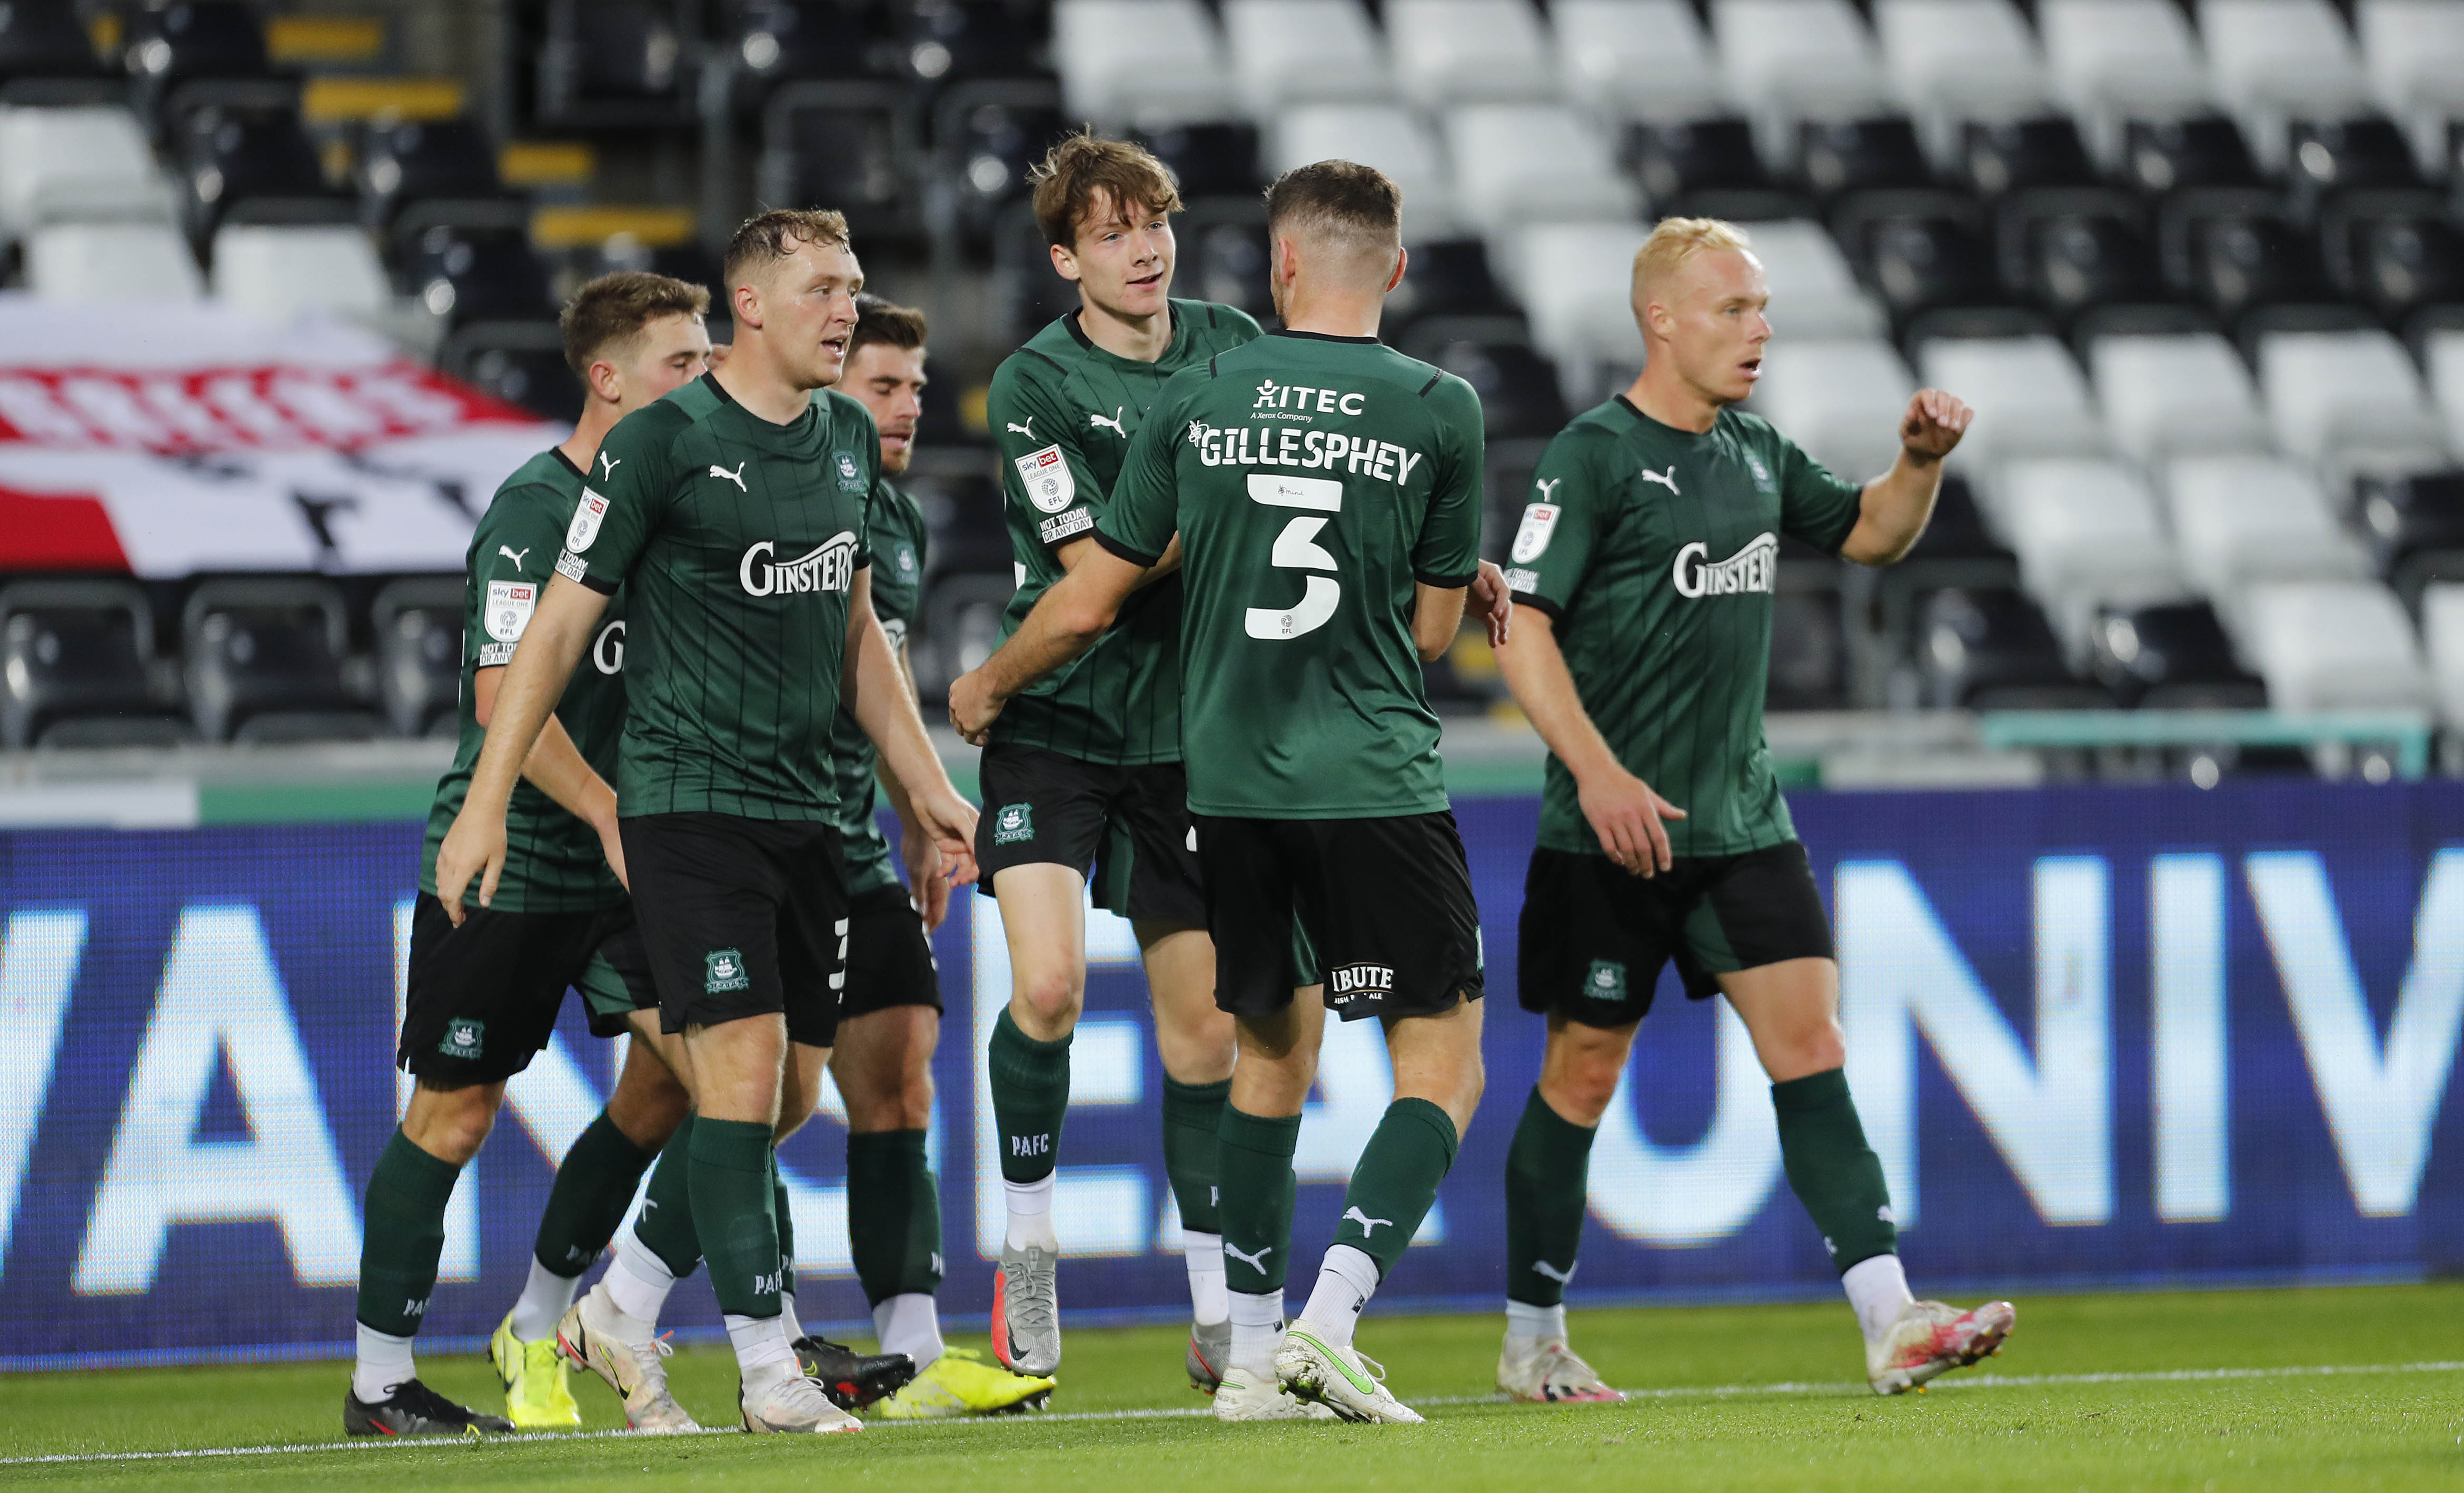 The players celebrate Rhys Shirley's goal